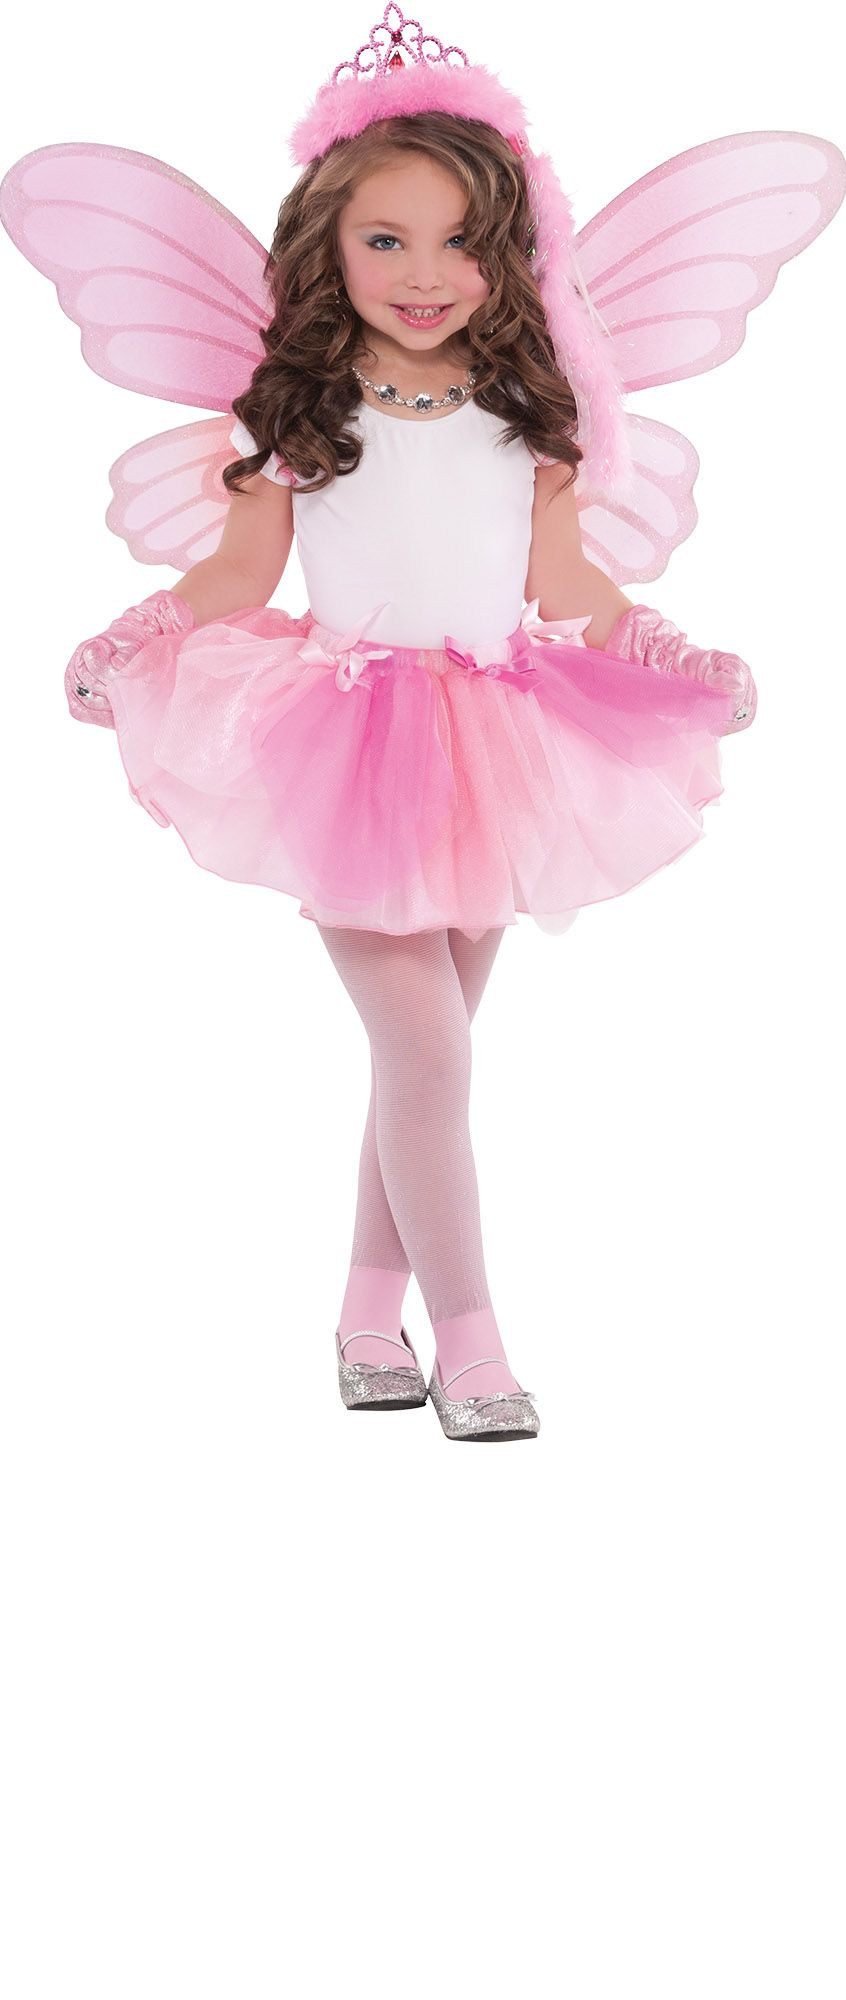 Create Your Own Girls' Princess Fairy Costume Accessories | Party City